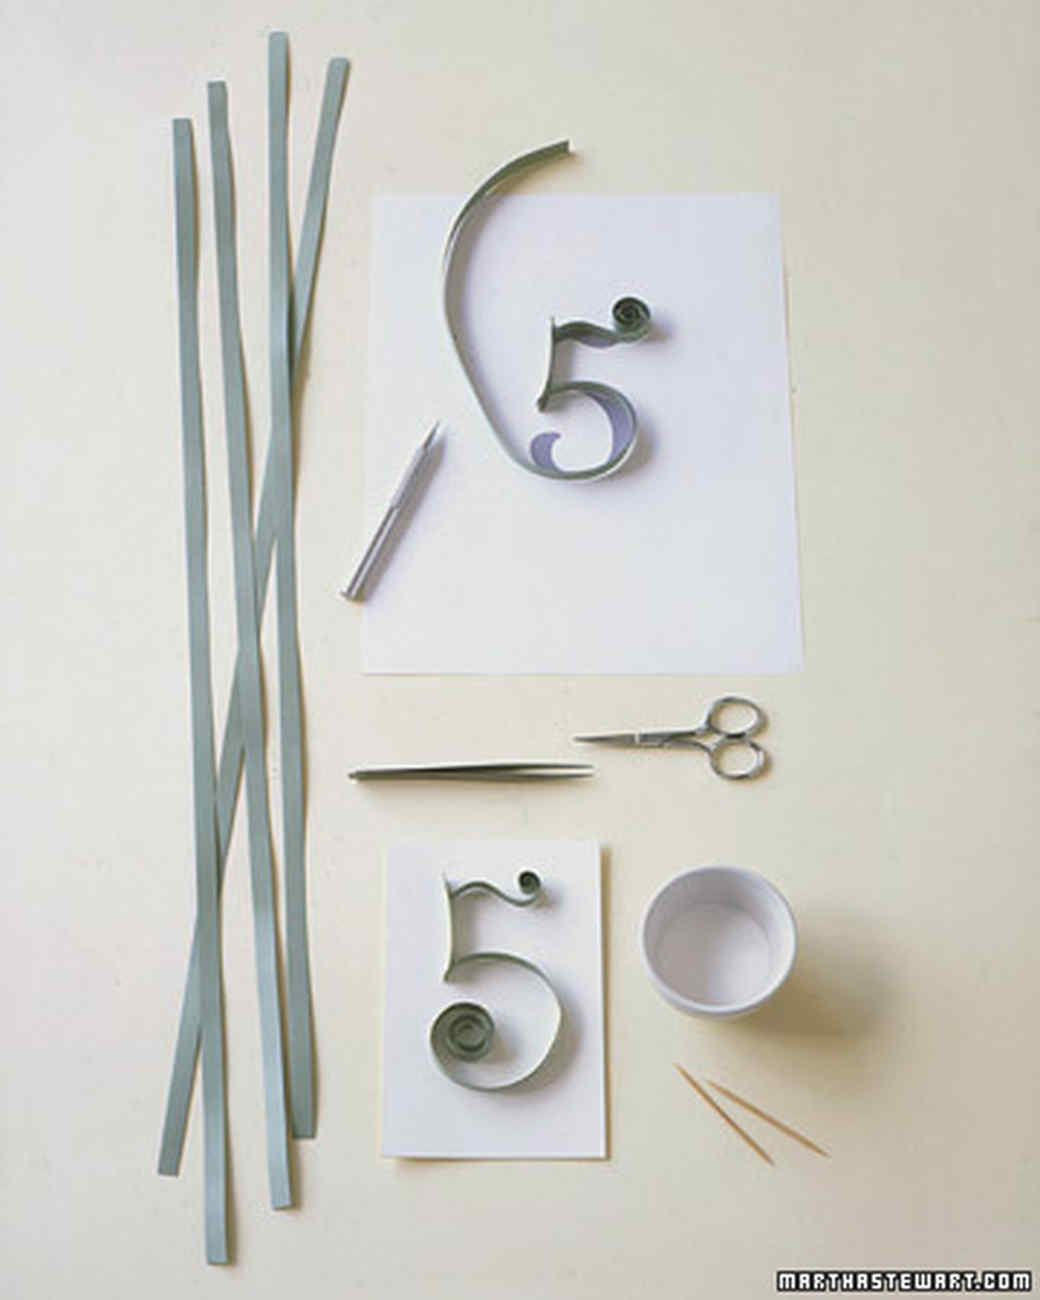 Apply white craft glue to edge of number with toothpick, and attach to card, using tweezers.